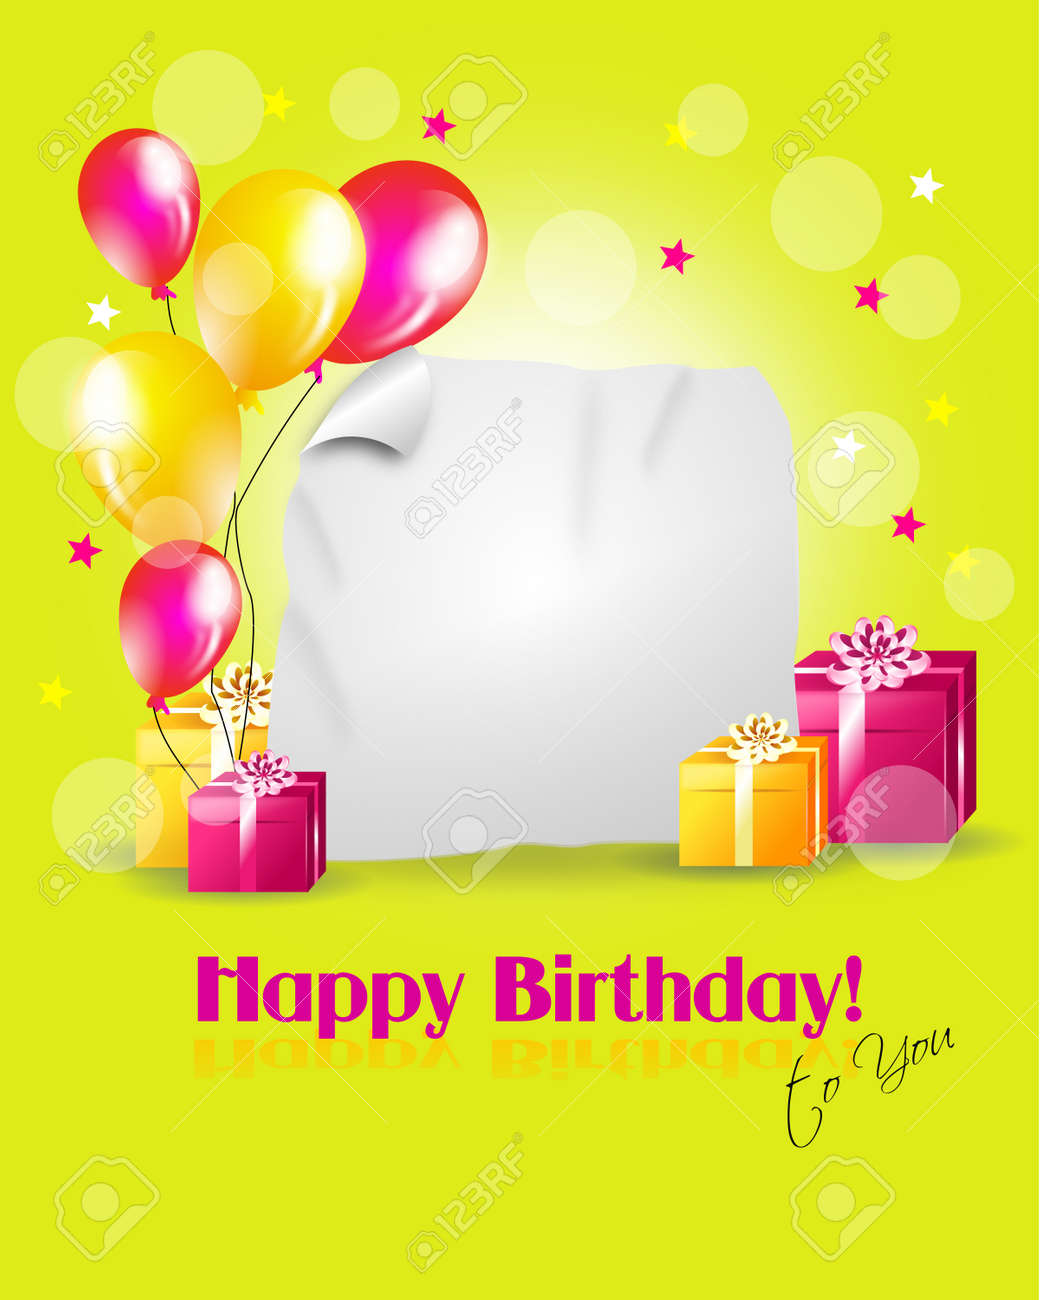 Happy Birthday Greeting Card With Gifts Balloons And Blank Paper For Your Text Stock Photo